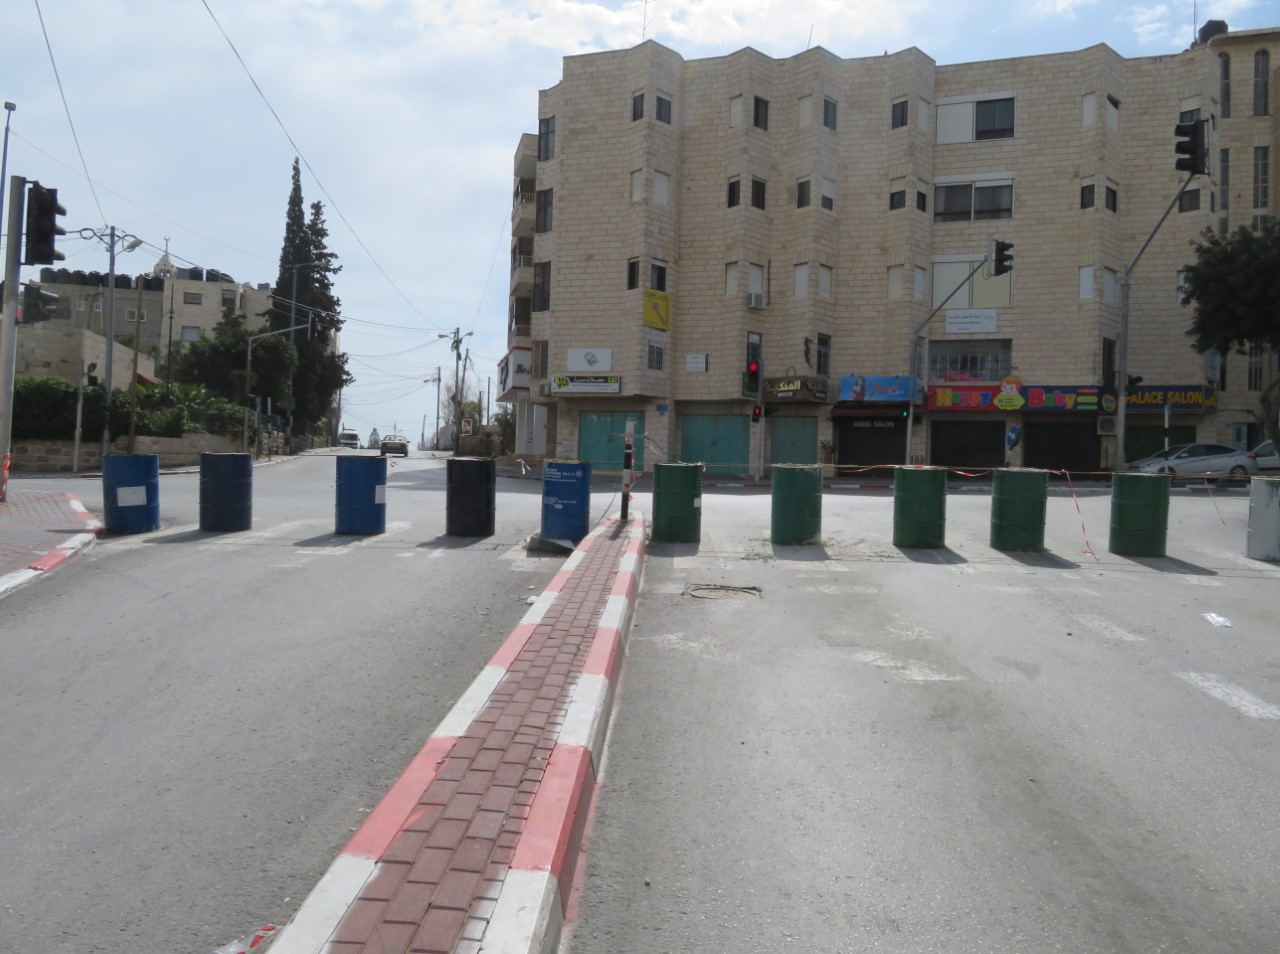 Barrels filled with liquids and/or concrete block the road leading between Bethlehem and Beit Jala.